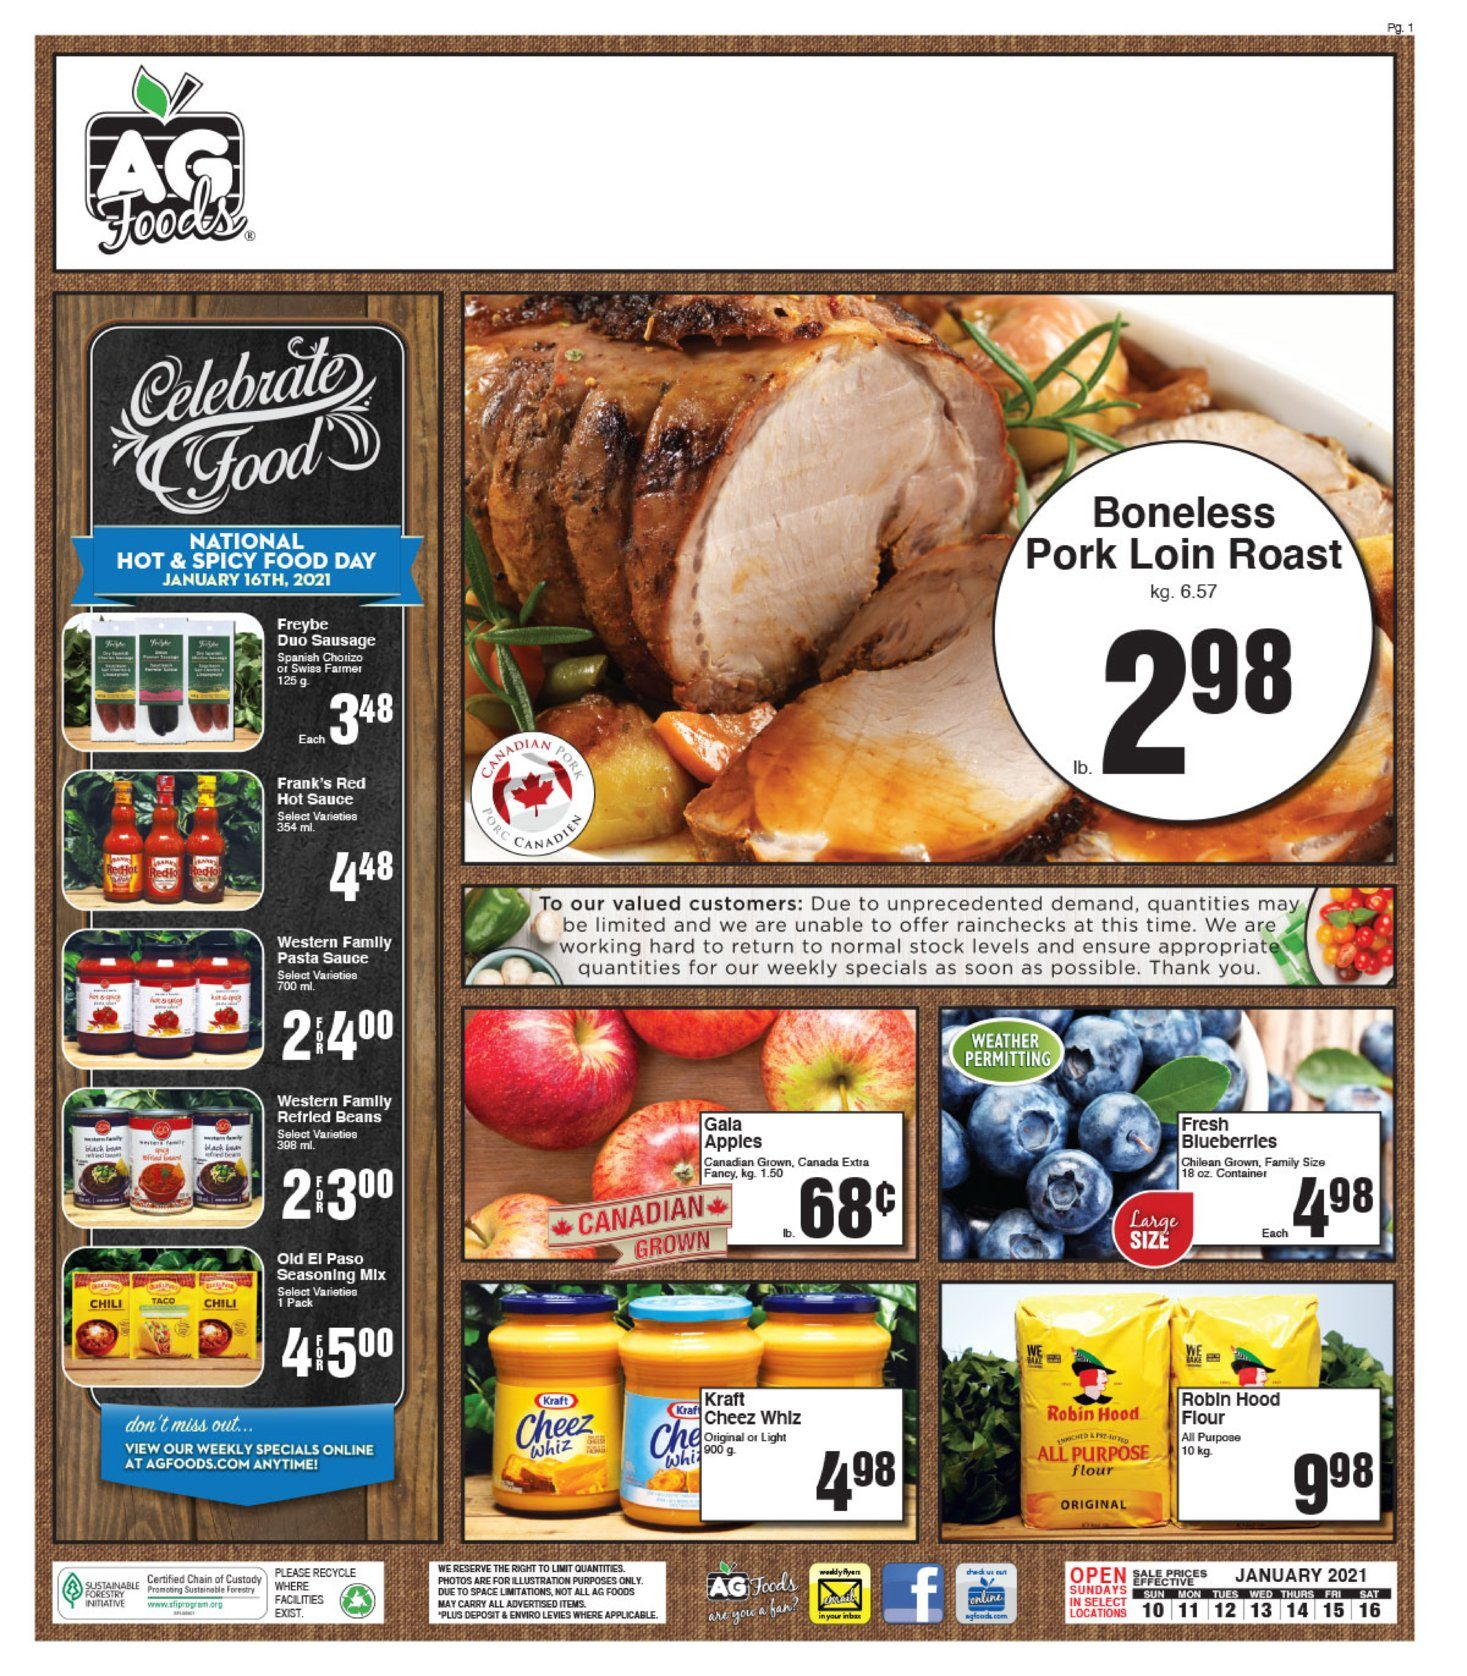 AG Foods - Weekly Flyer Specials